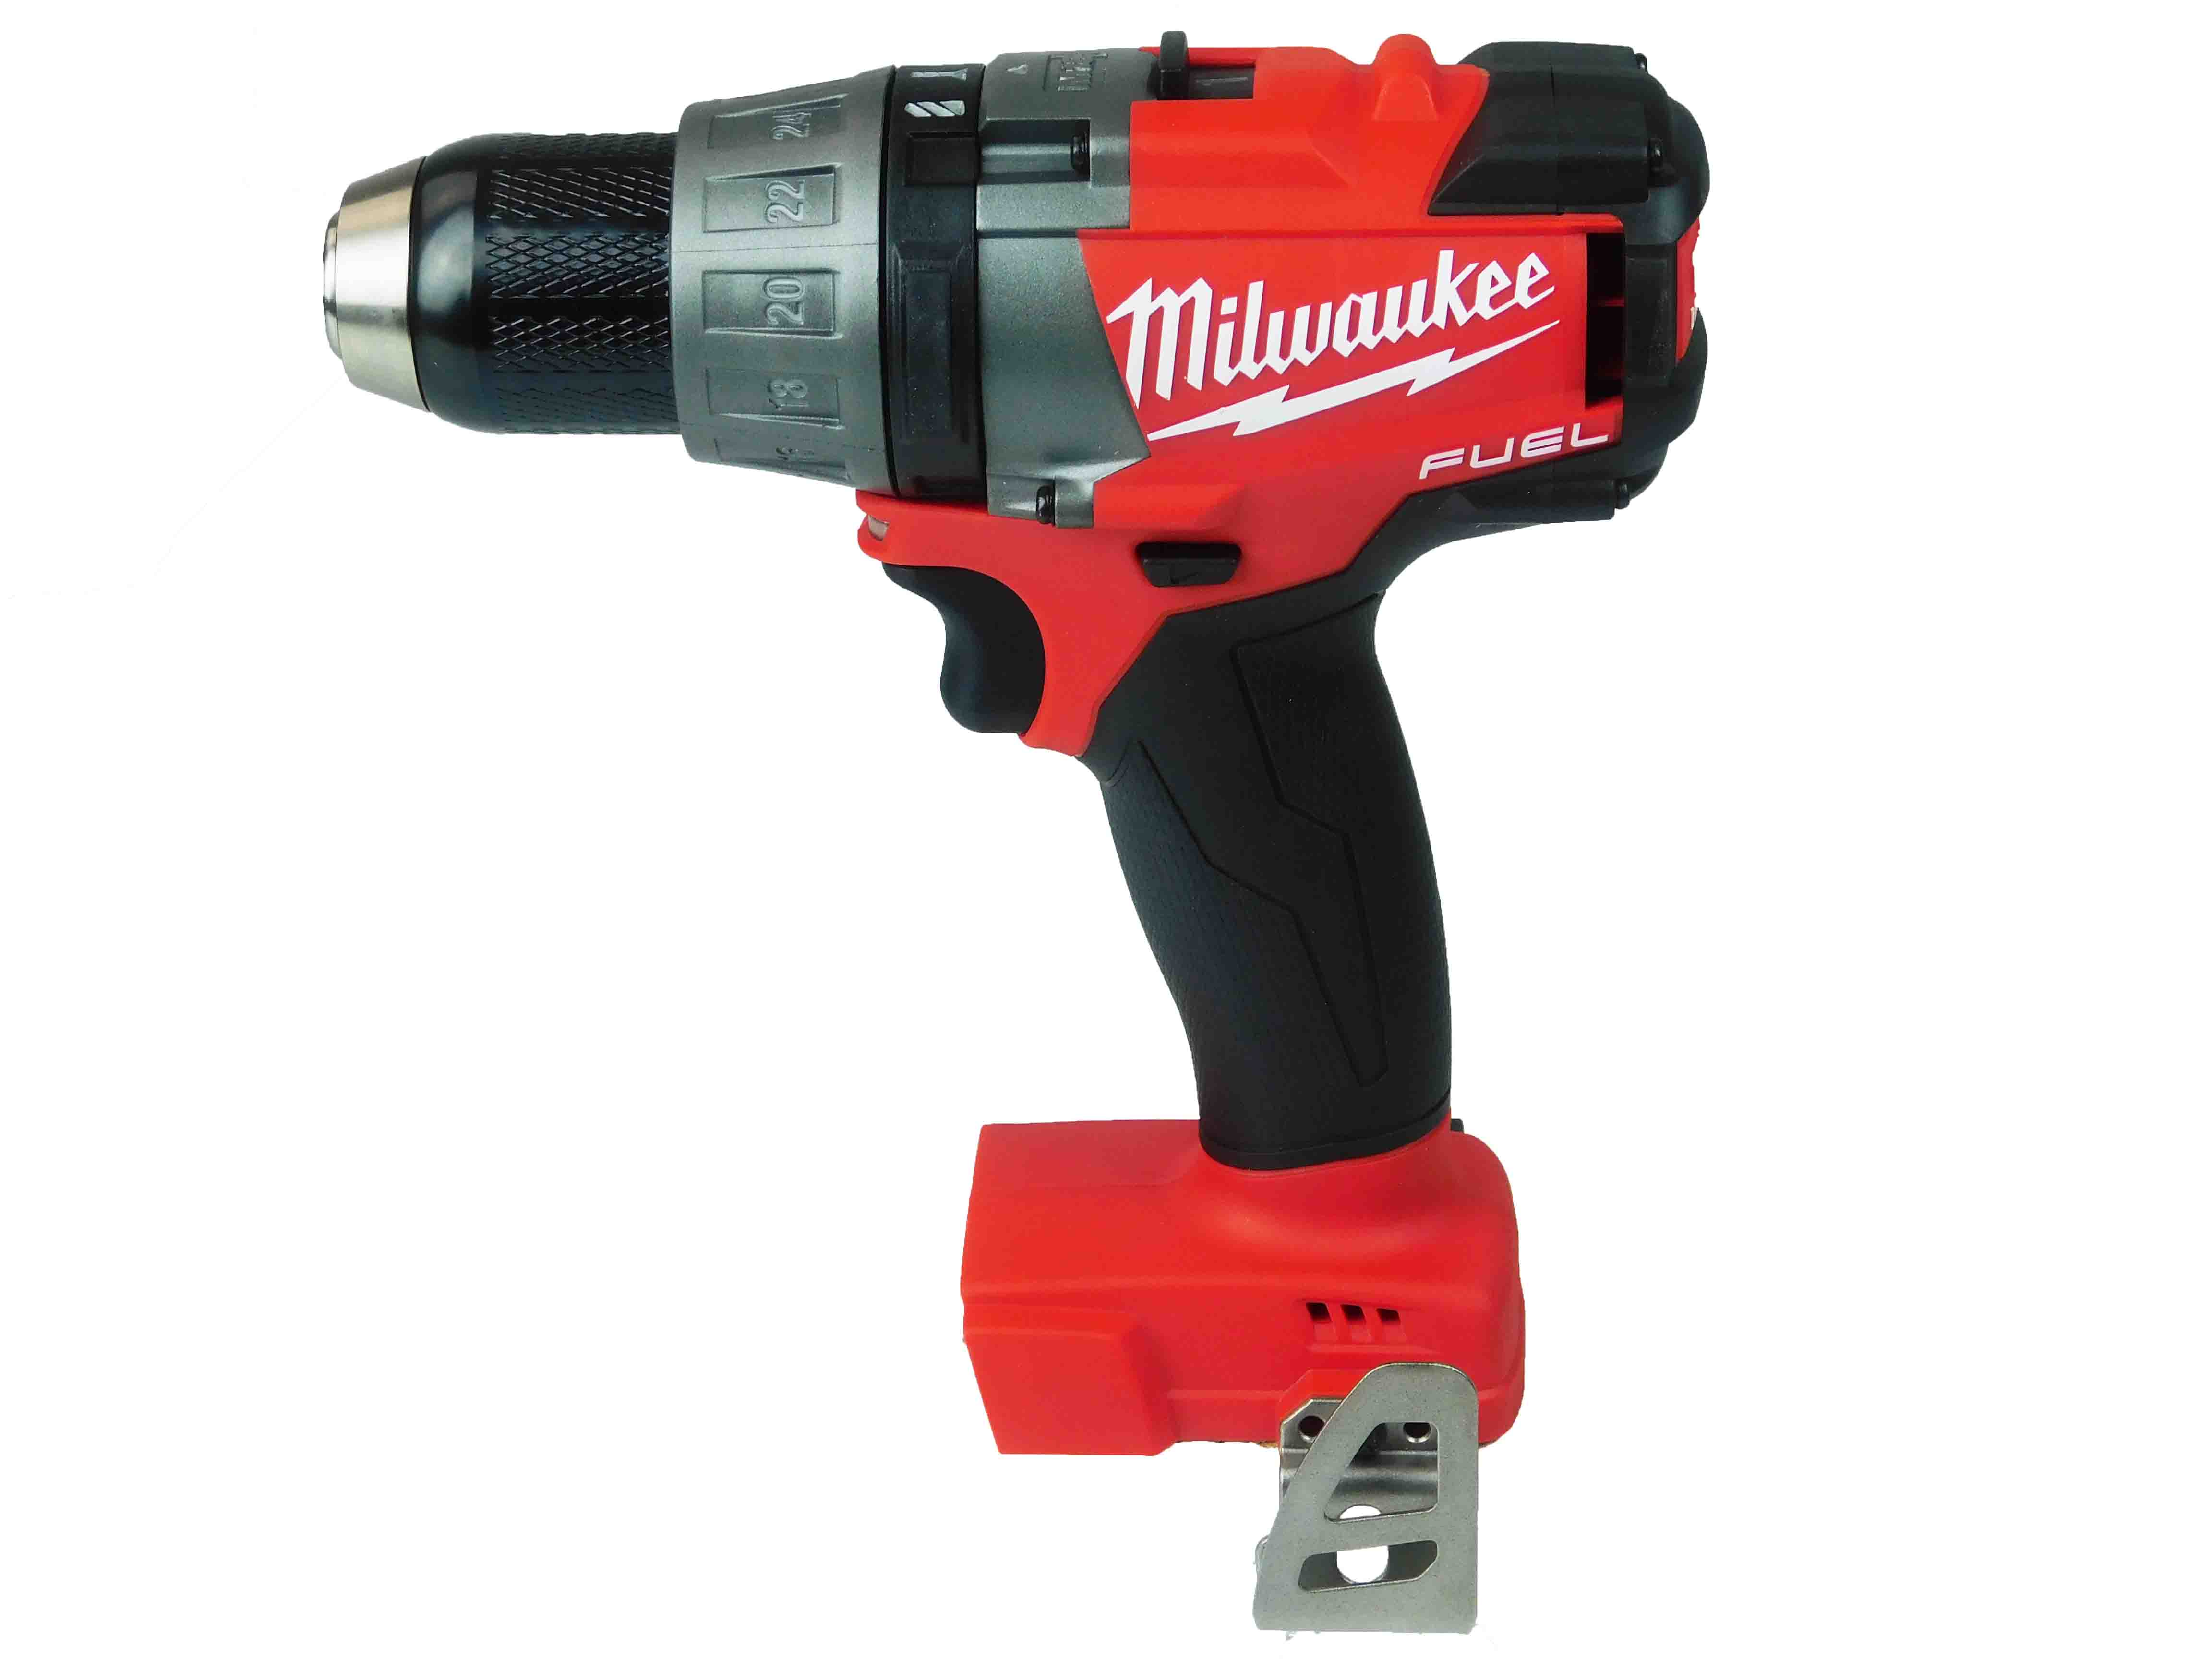 Milwaukee-2703-20-M18-Compact-1-2-Drill-Driver-Bare-Tool-image-10